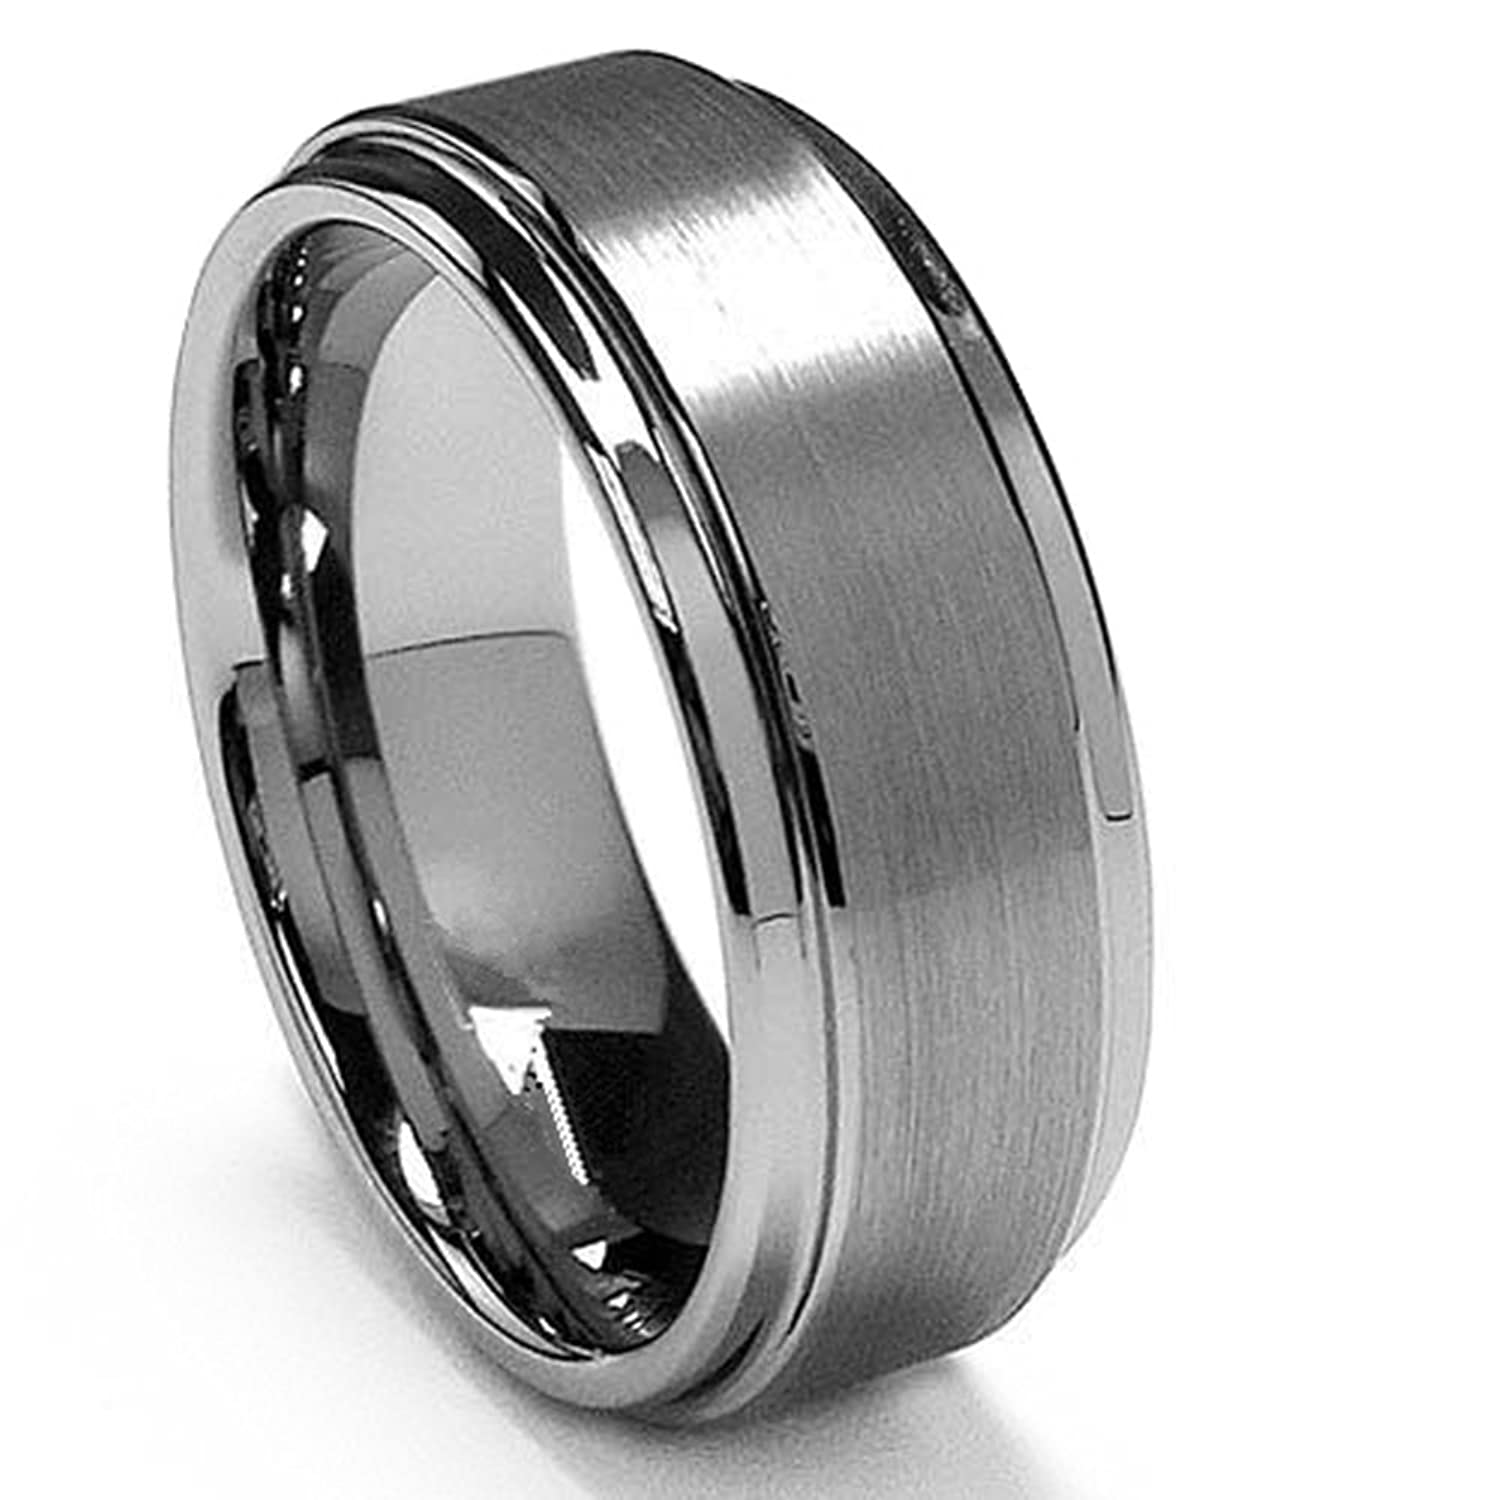 8mm tungsten carbide men s wedding band ring in comfort fit and